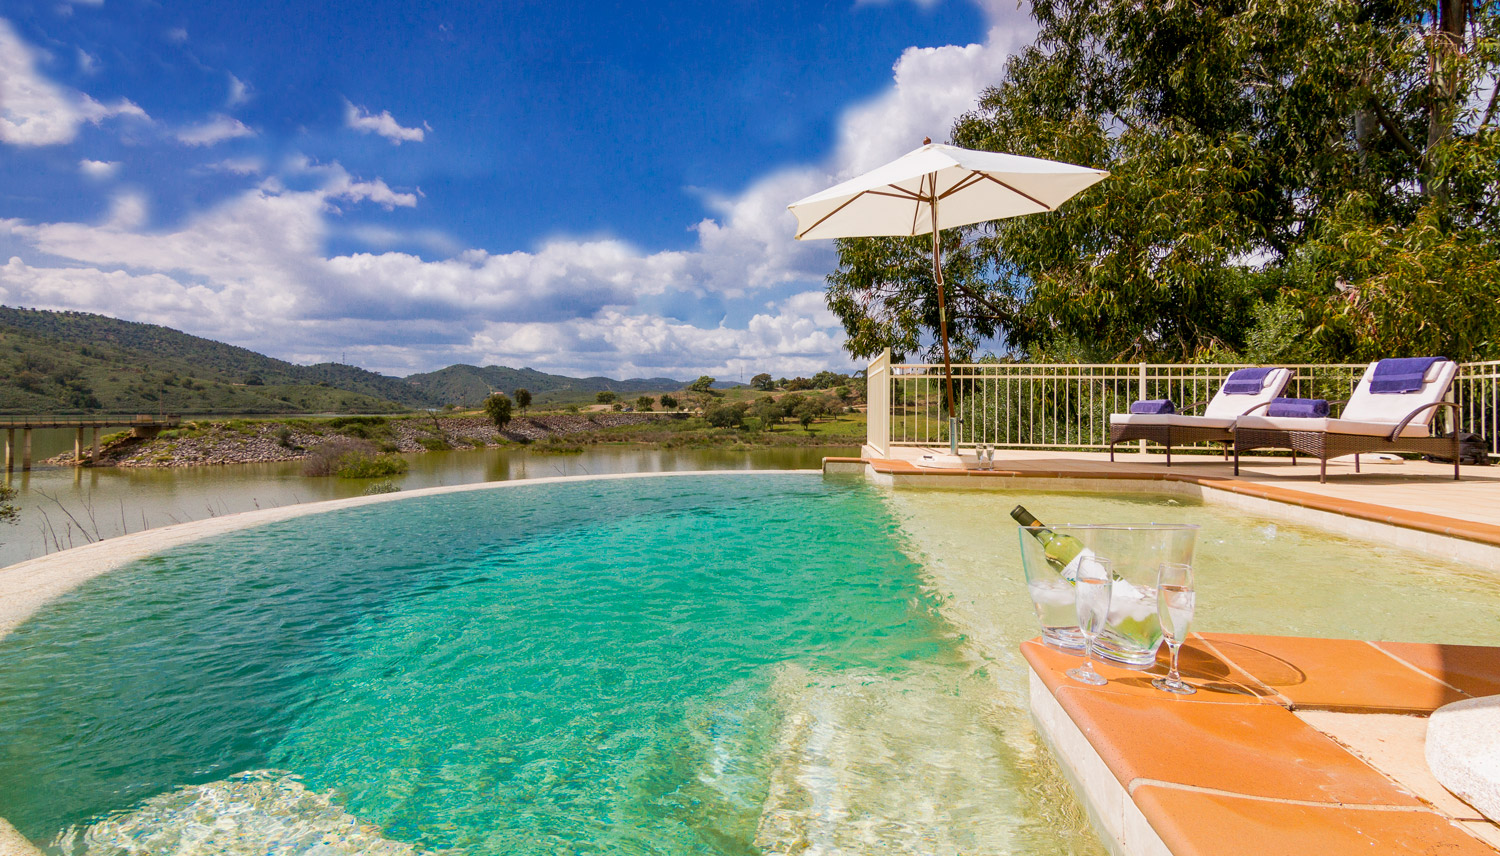 Infinity pool overlooking the river with views of the mountains, Algarve, Portugal